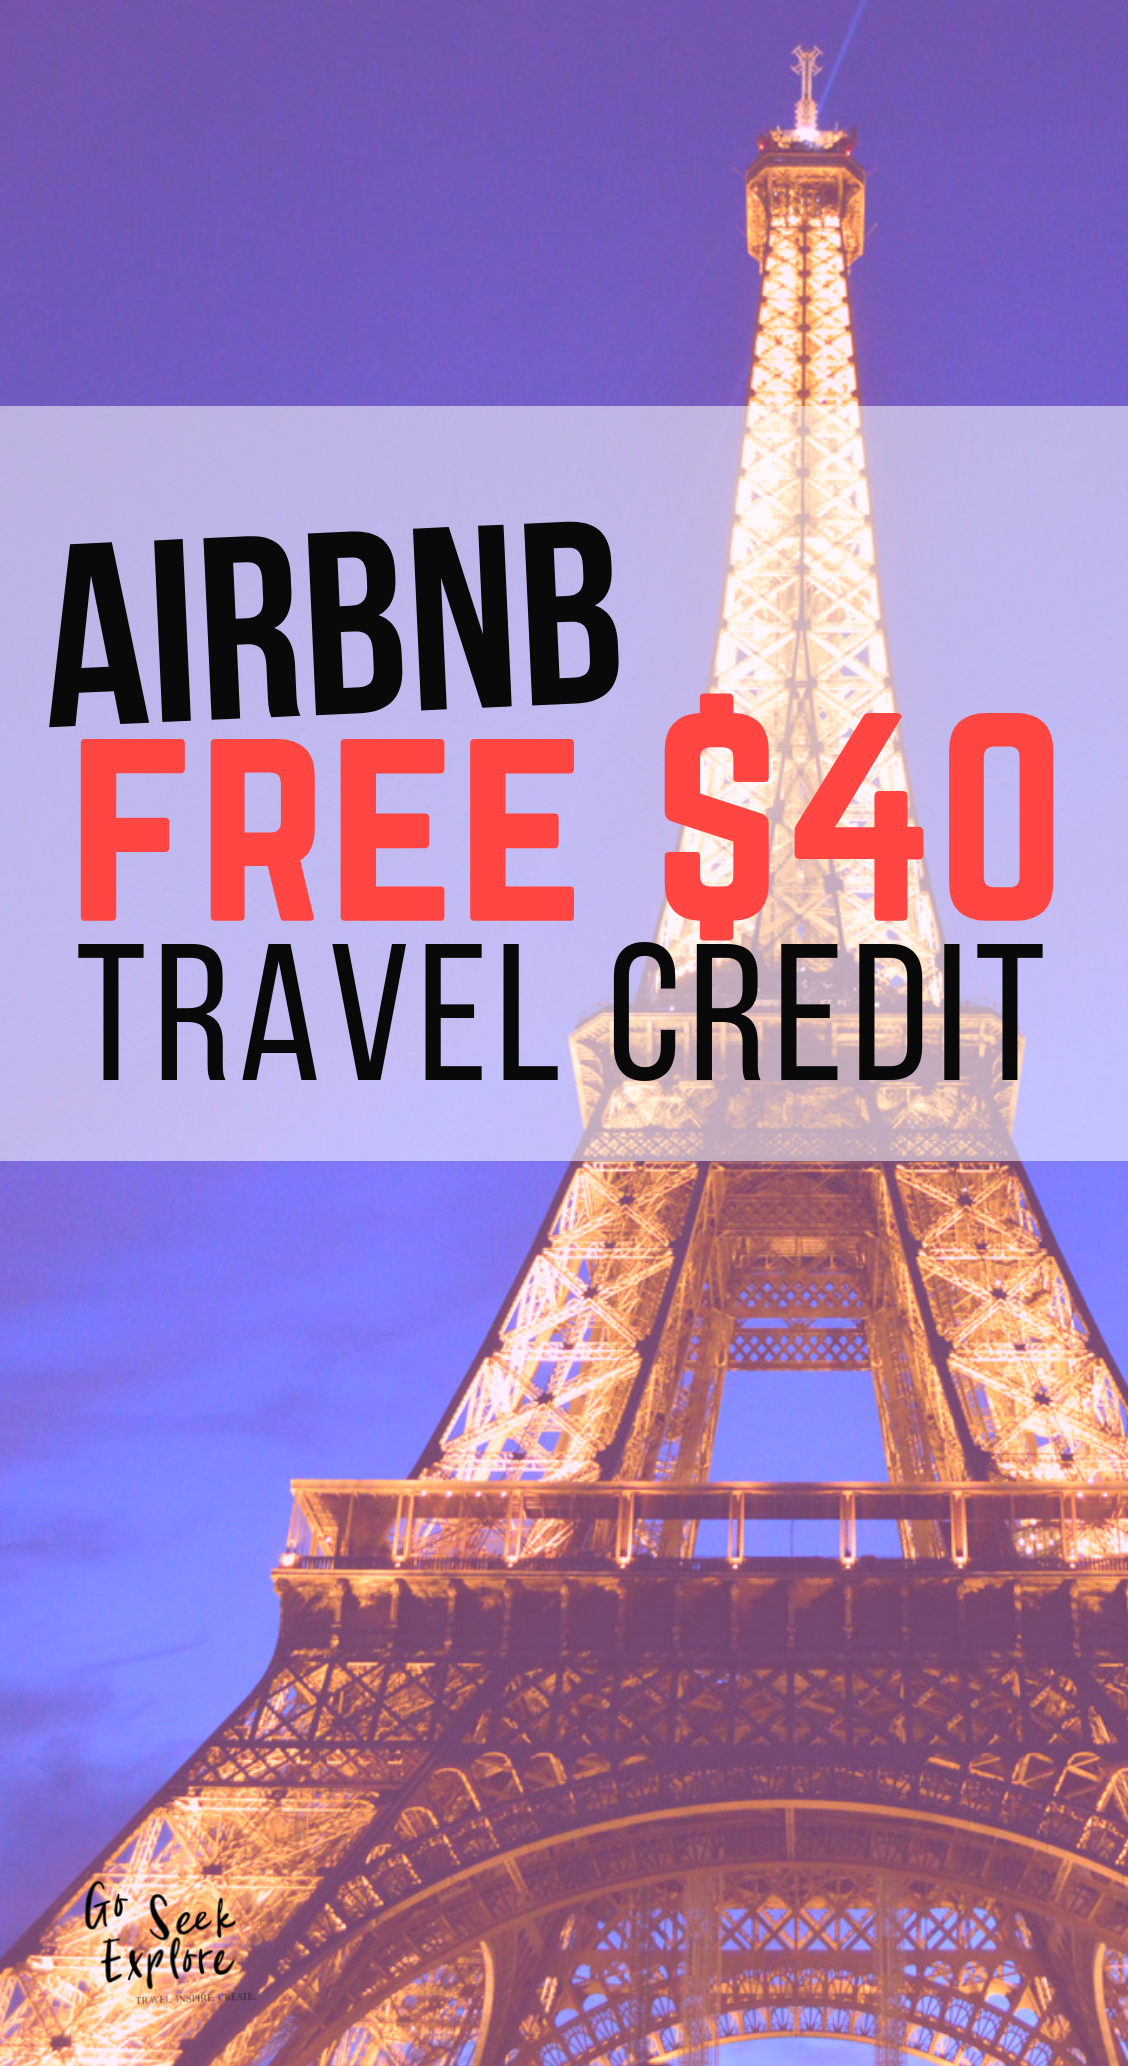 Get a free travel credit worth $40 to Airbnb! (Claim now, book later!) Airbnb is my go-to site for amazing places to stay while traveling. You live like a local and have access to the amenities that you would back home. I've loved finding homes with a fully equipped kitchen, washer/dryer, desk, wifi, & great views. Plus, you often get great tips from a local on what you should ACTUALLY do in their city - after all, they're the experts! Click through & get your free Airbnb discount. Bon voyage!